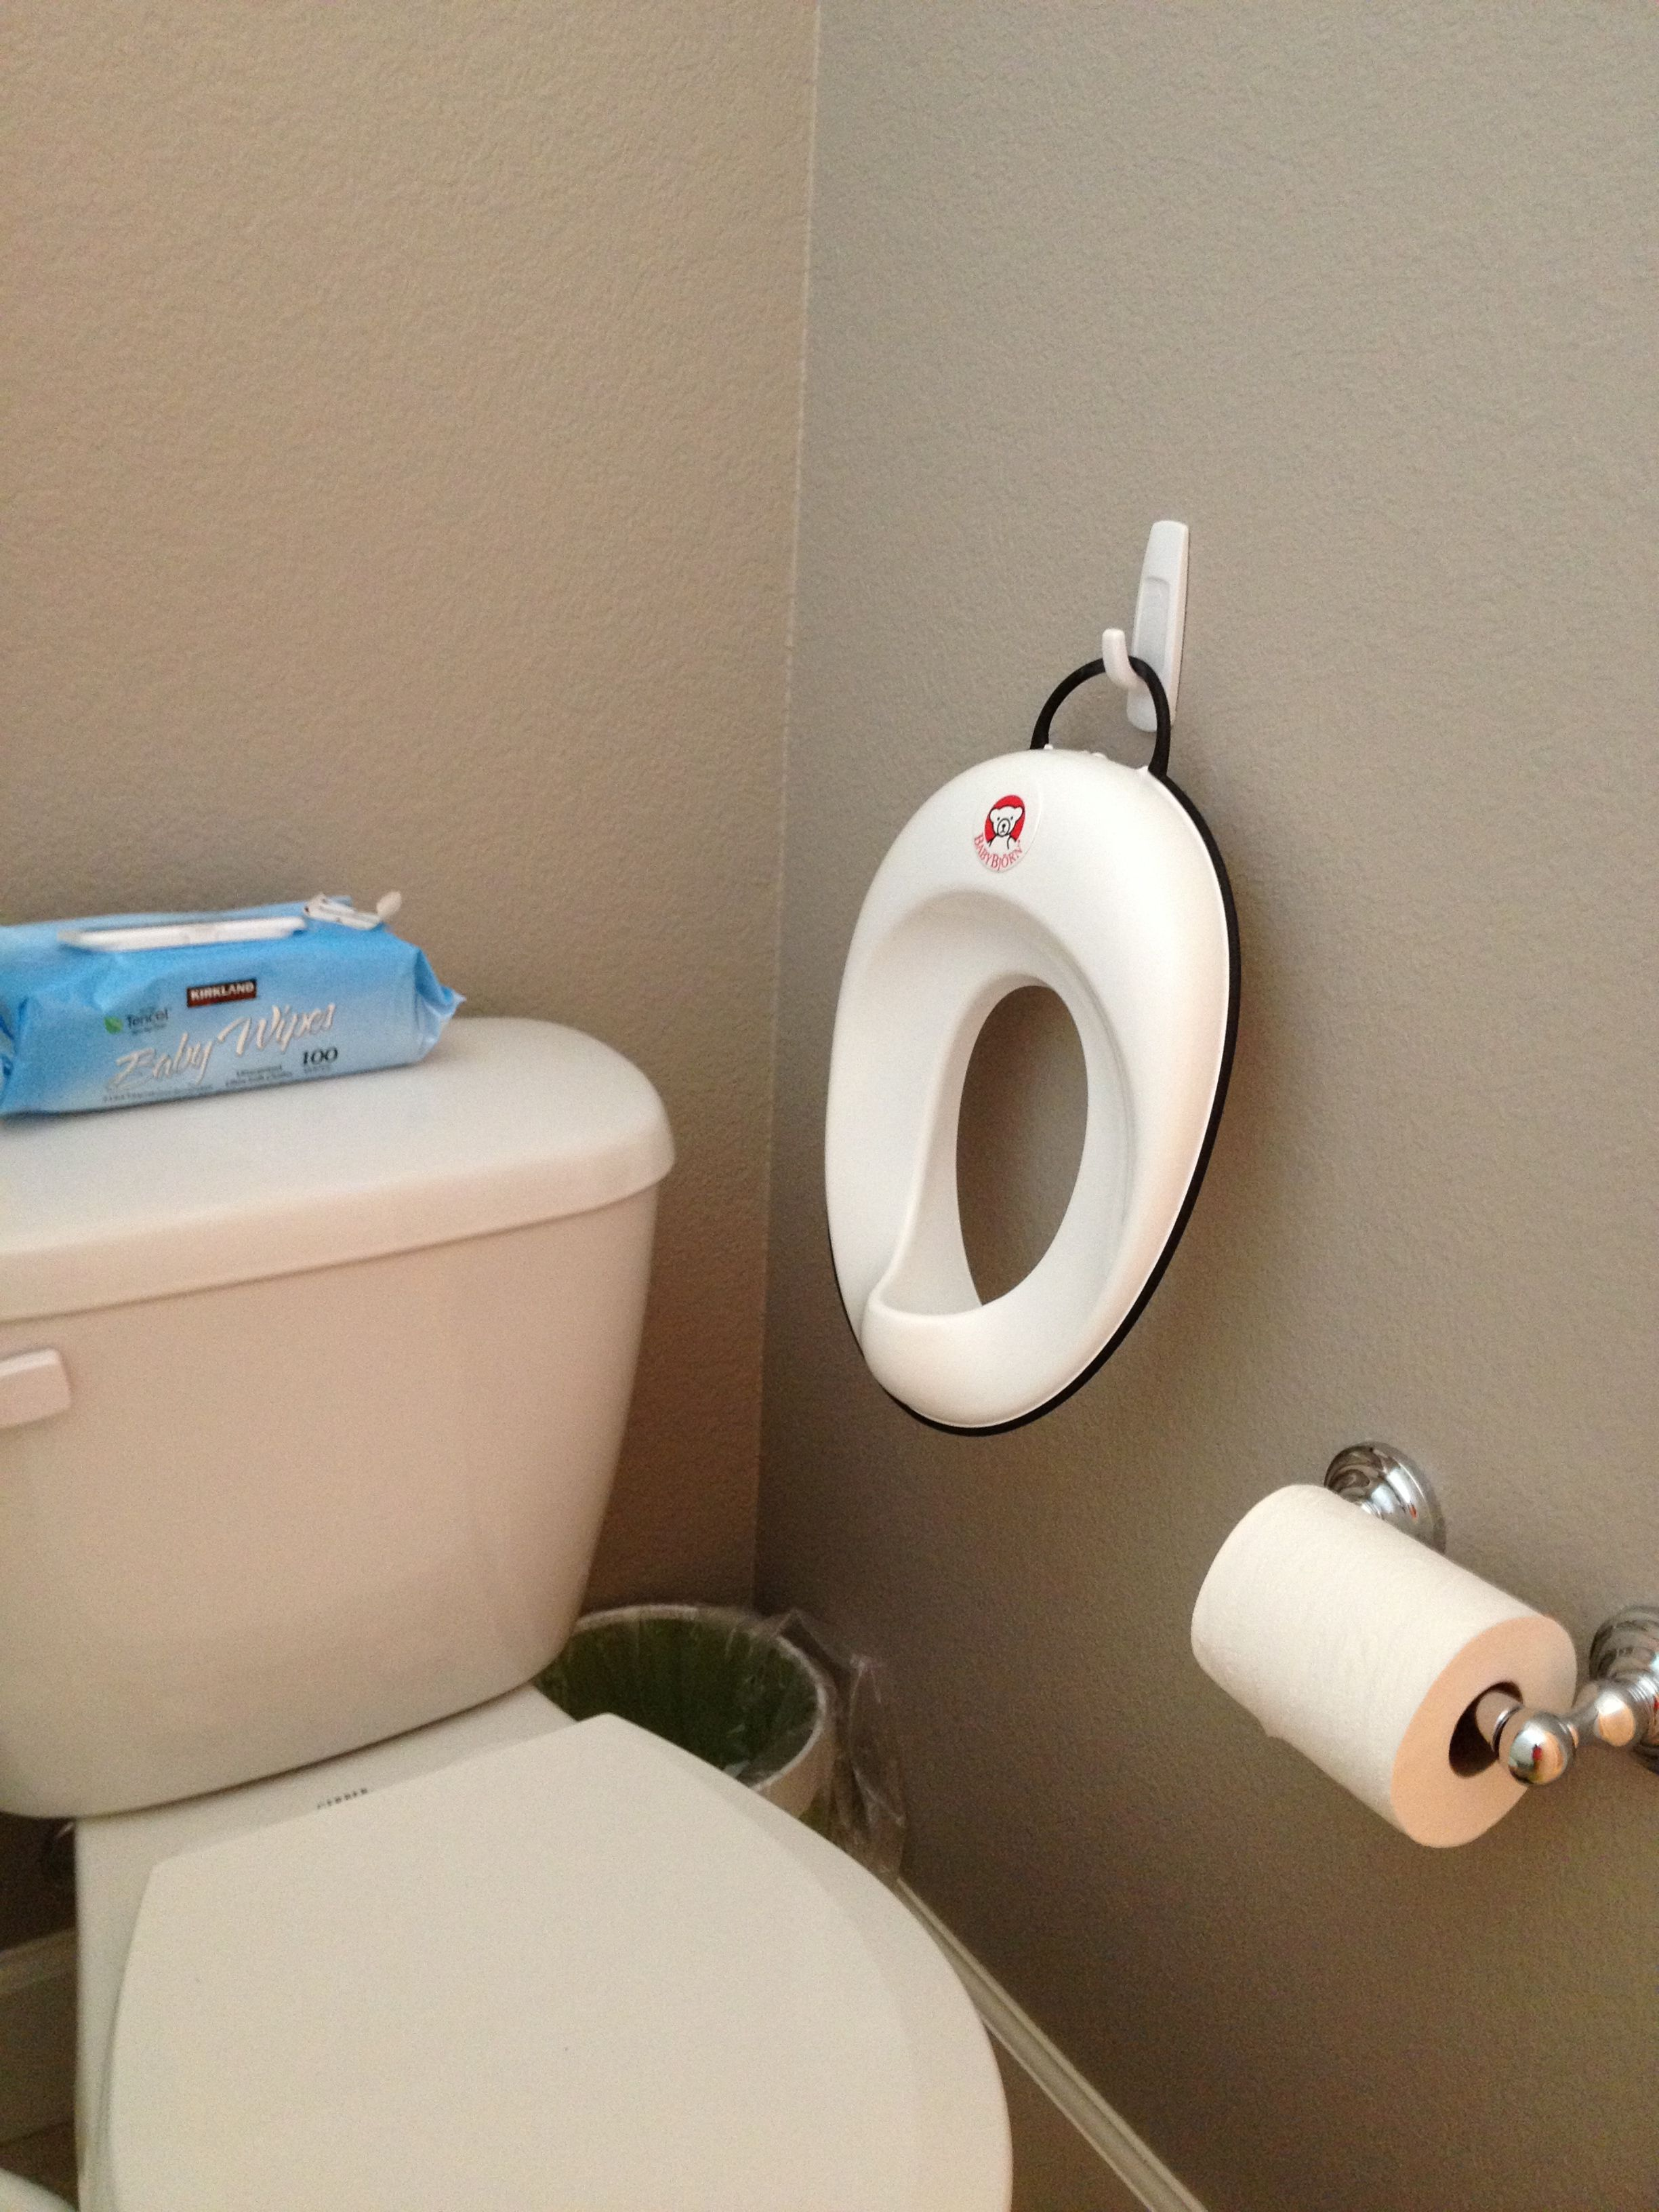 Handy Way To Store The Potty Seat So Others Can Use The Toilet Command Hooks Rock Potty Seat Bathroom Organization Clean My House